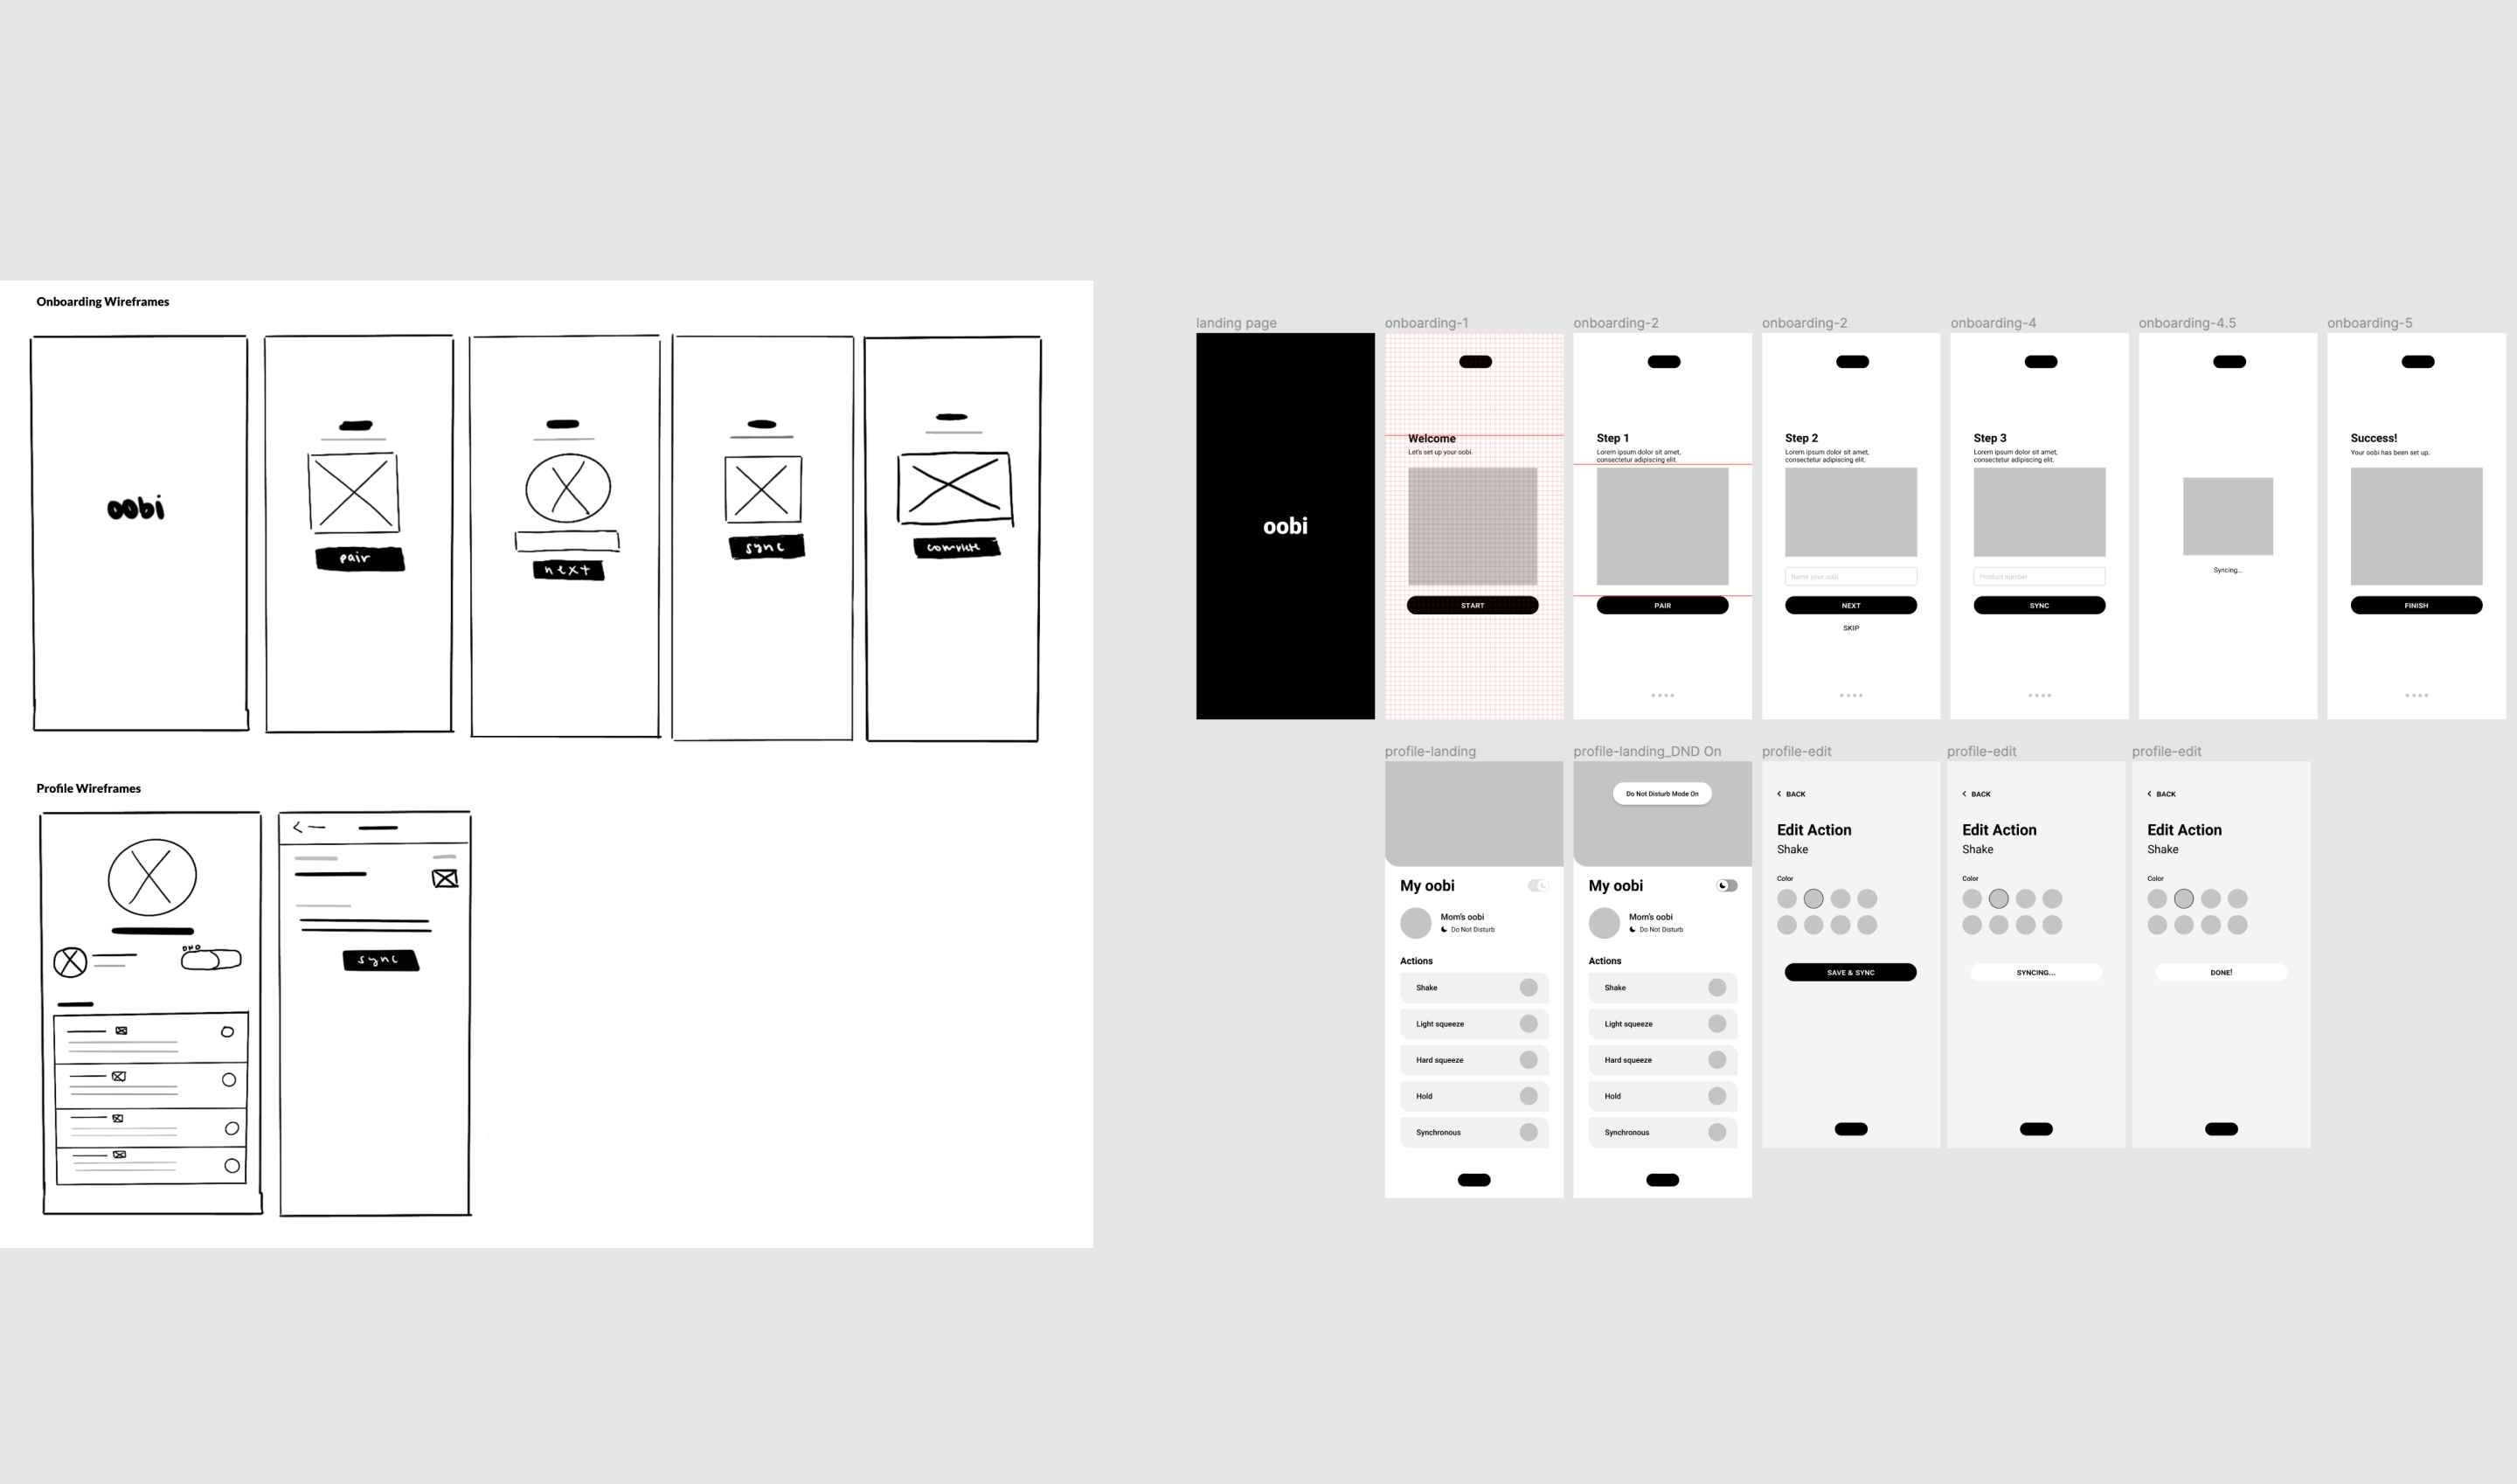 Lo-fi sketched wireframes of the Oobi onboarding and profile screens (left). Hi-fi black and white wireframes (right).